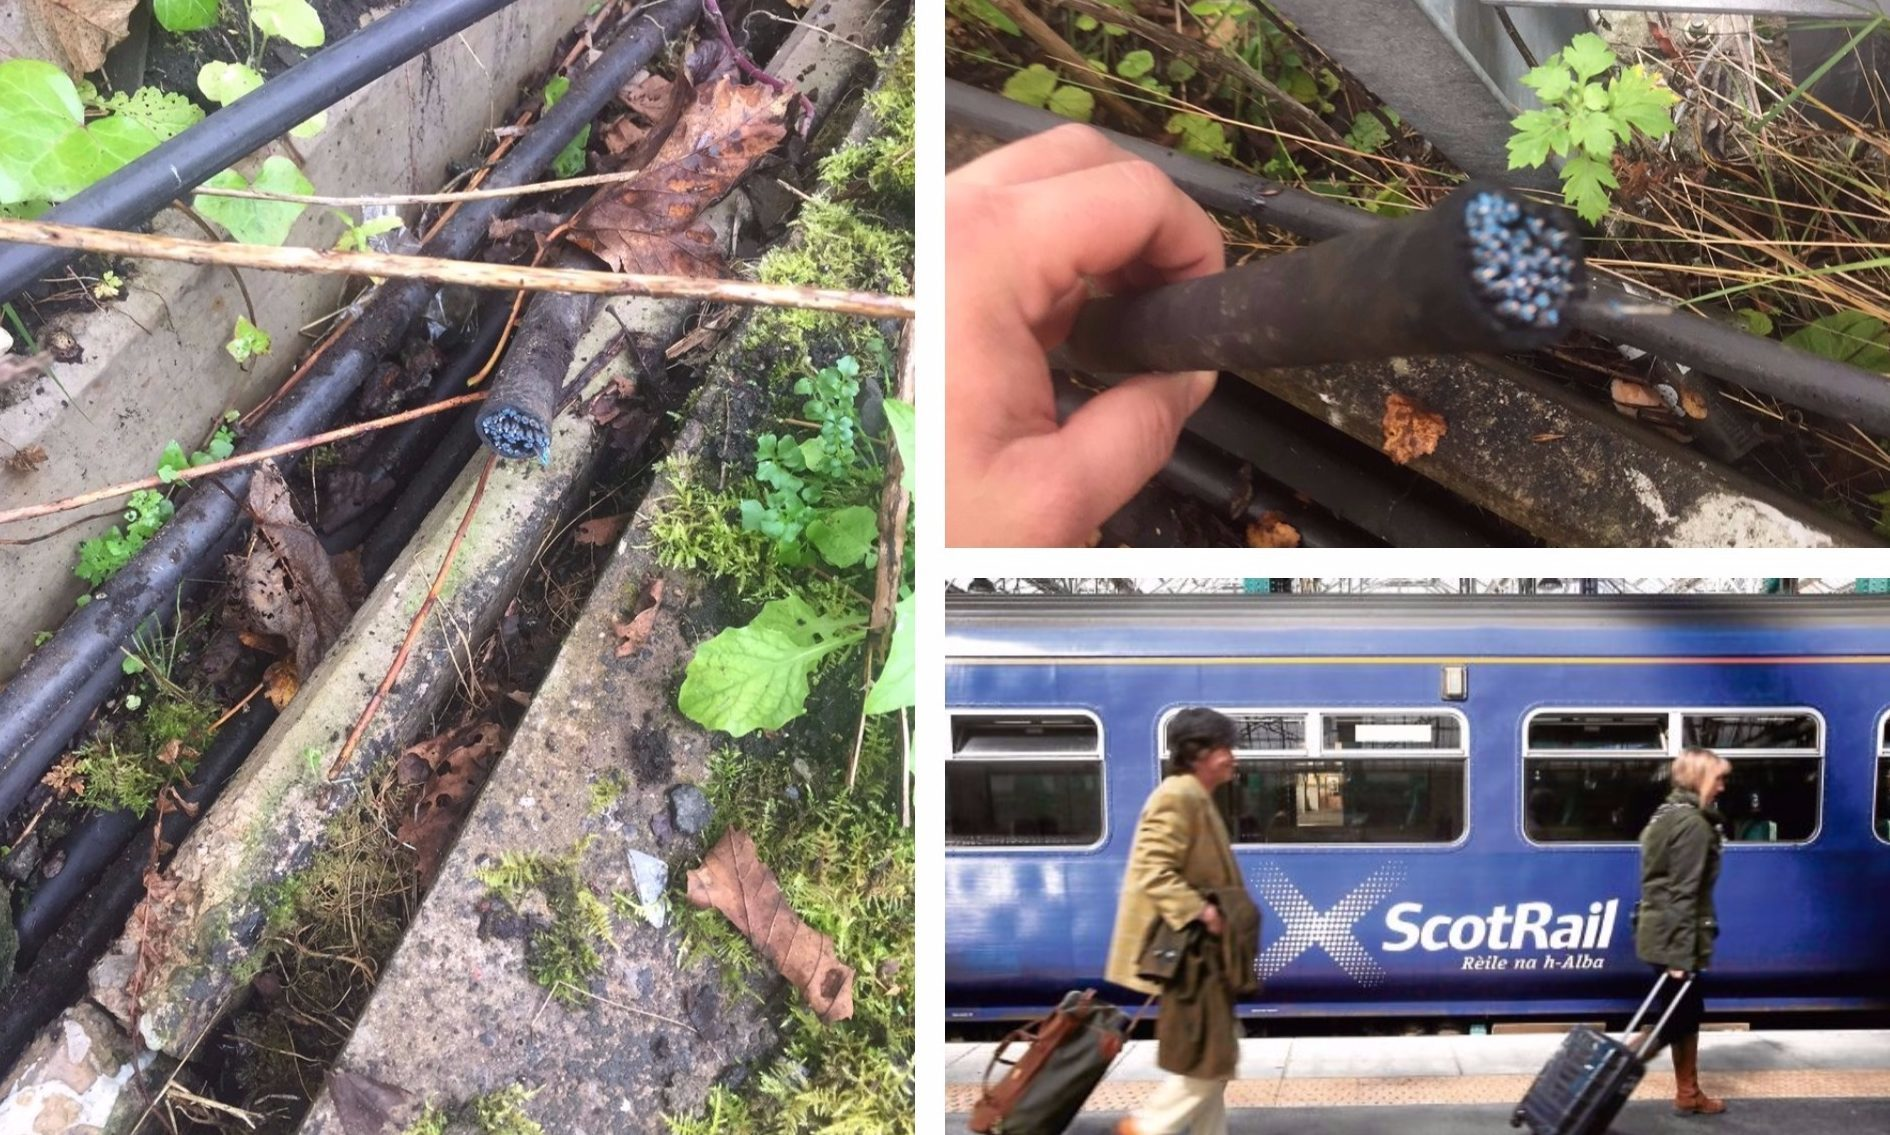 ScotRail shared these photos from the scene of the crime